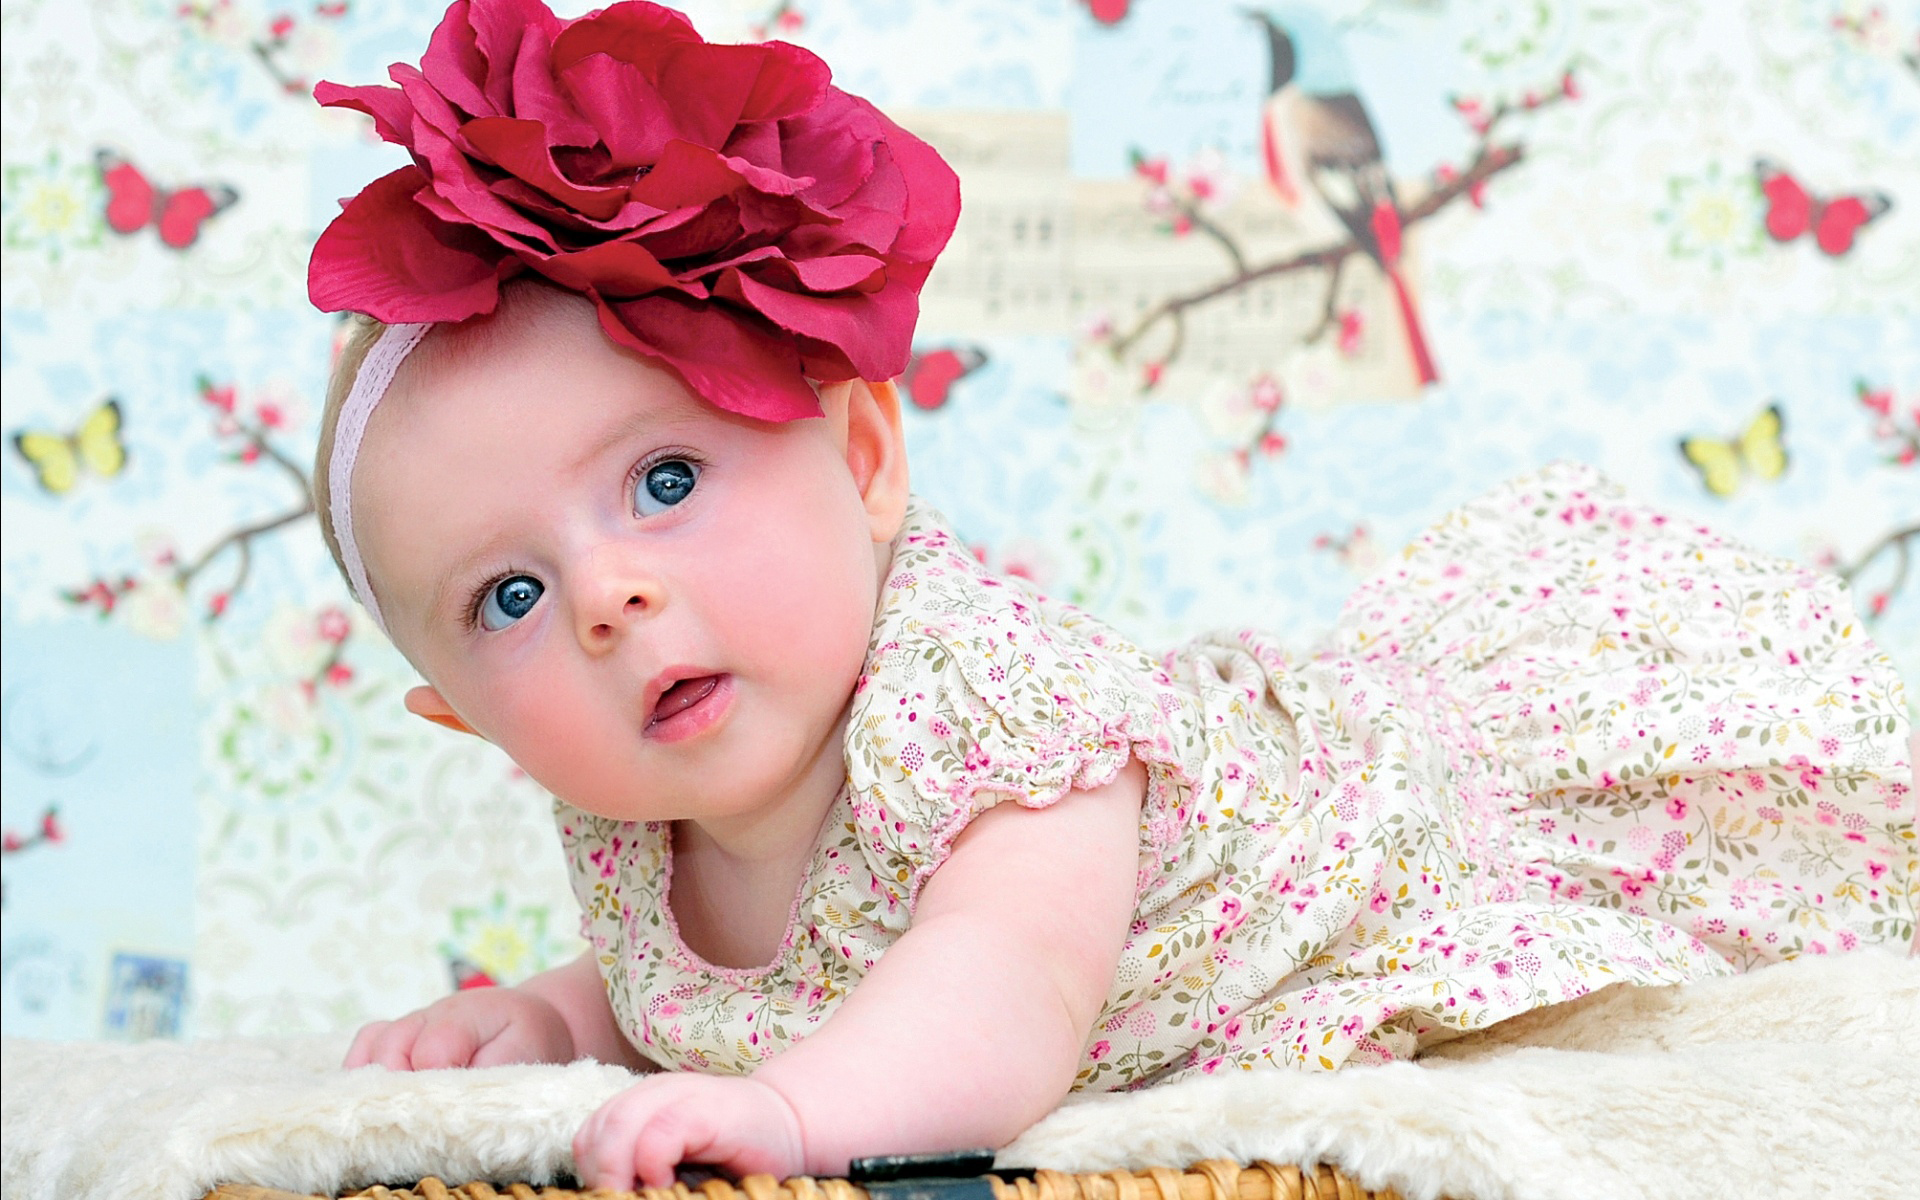 Wallpaper download baby girl - Cute Baby Girl Wallpaper Cool Pictures 6om8053a Yoanu